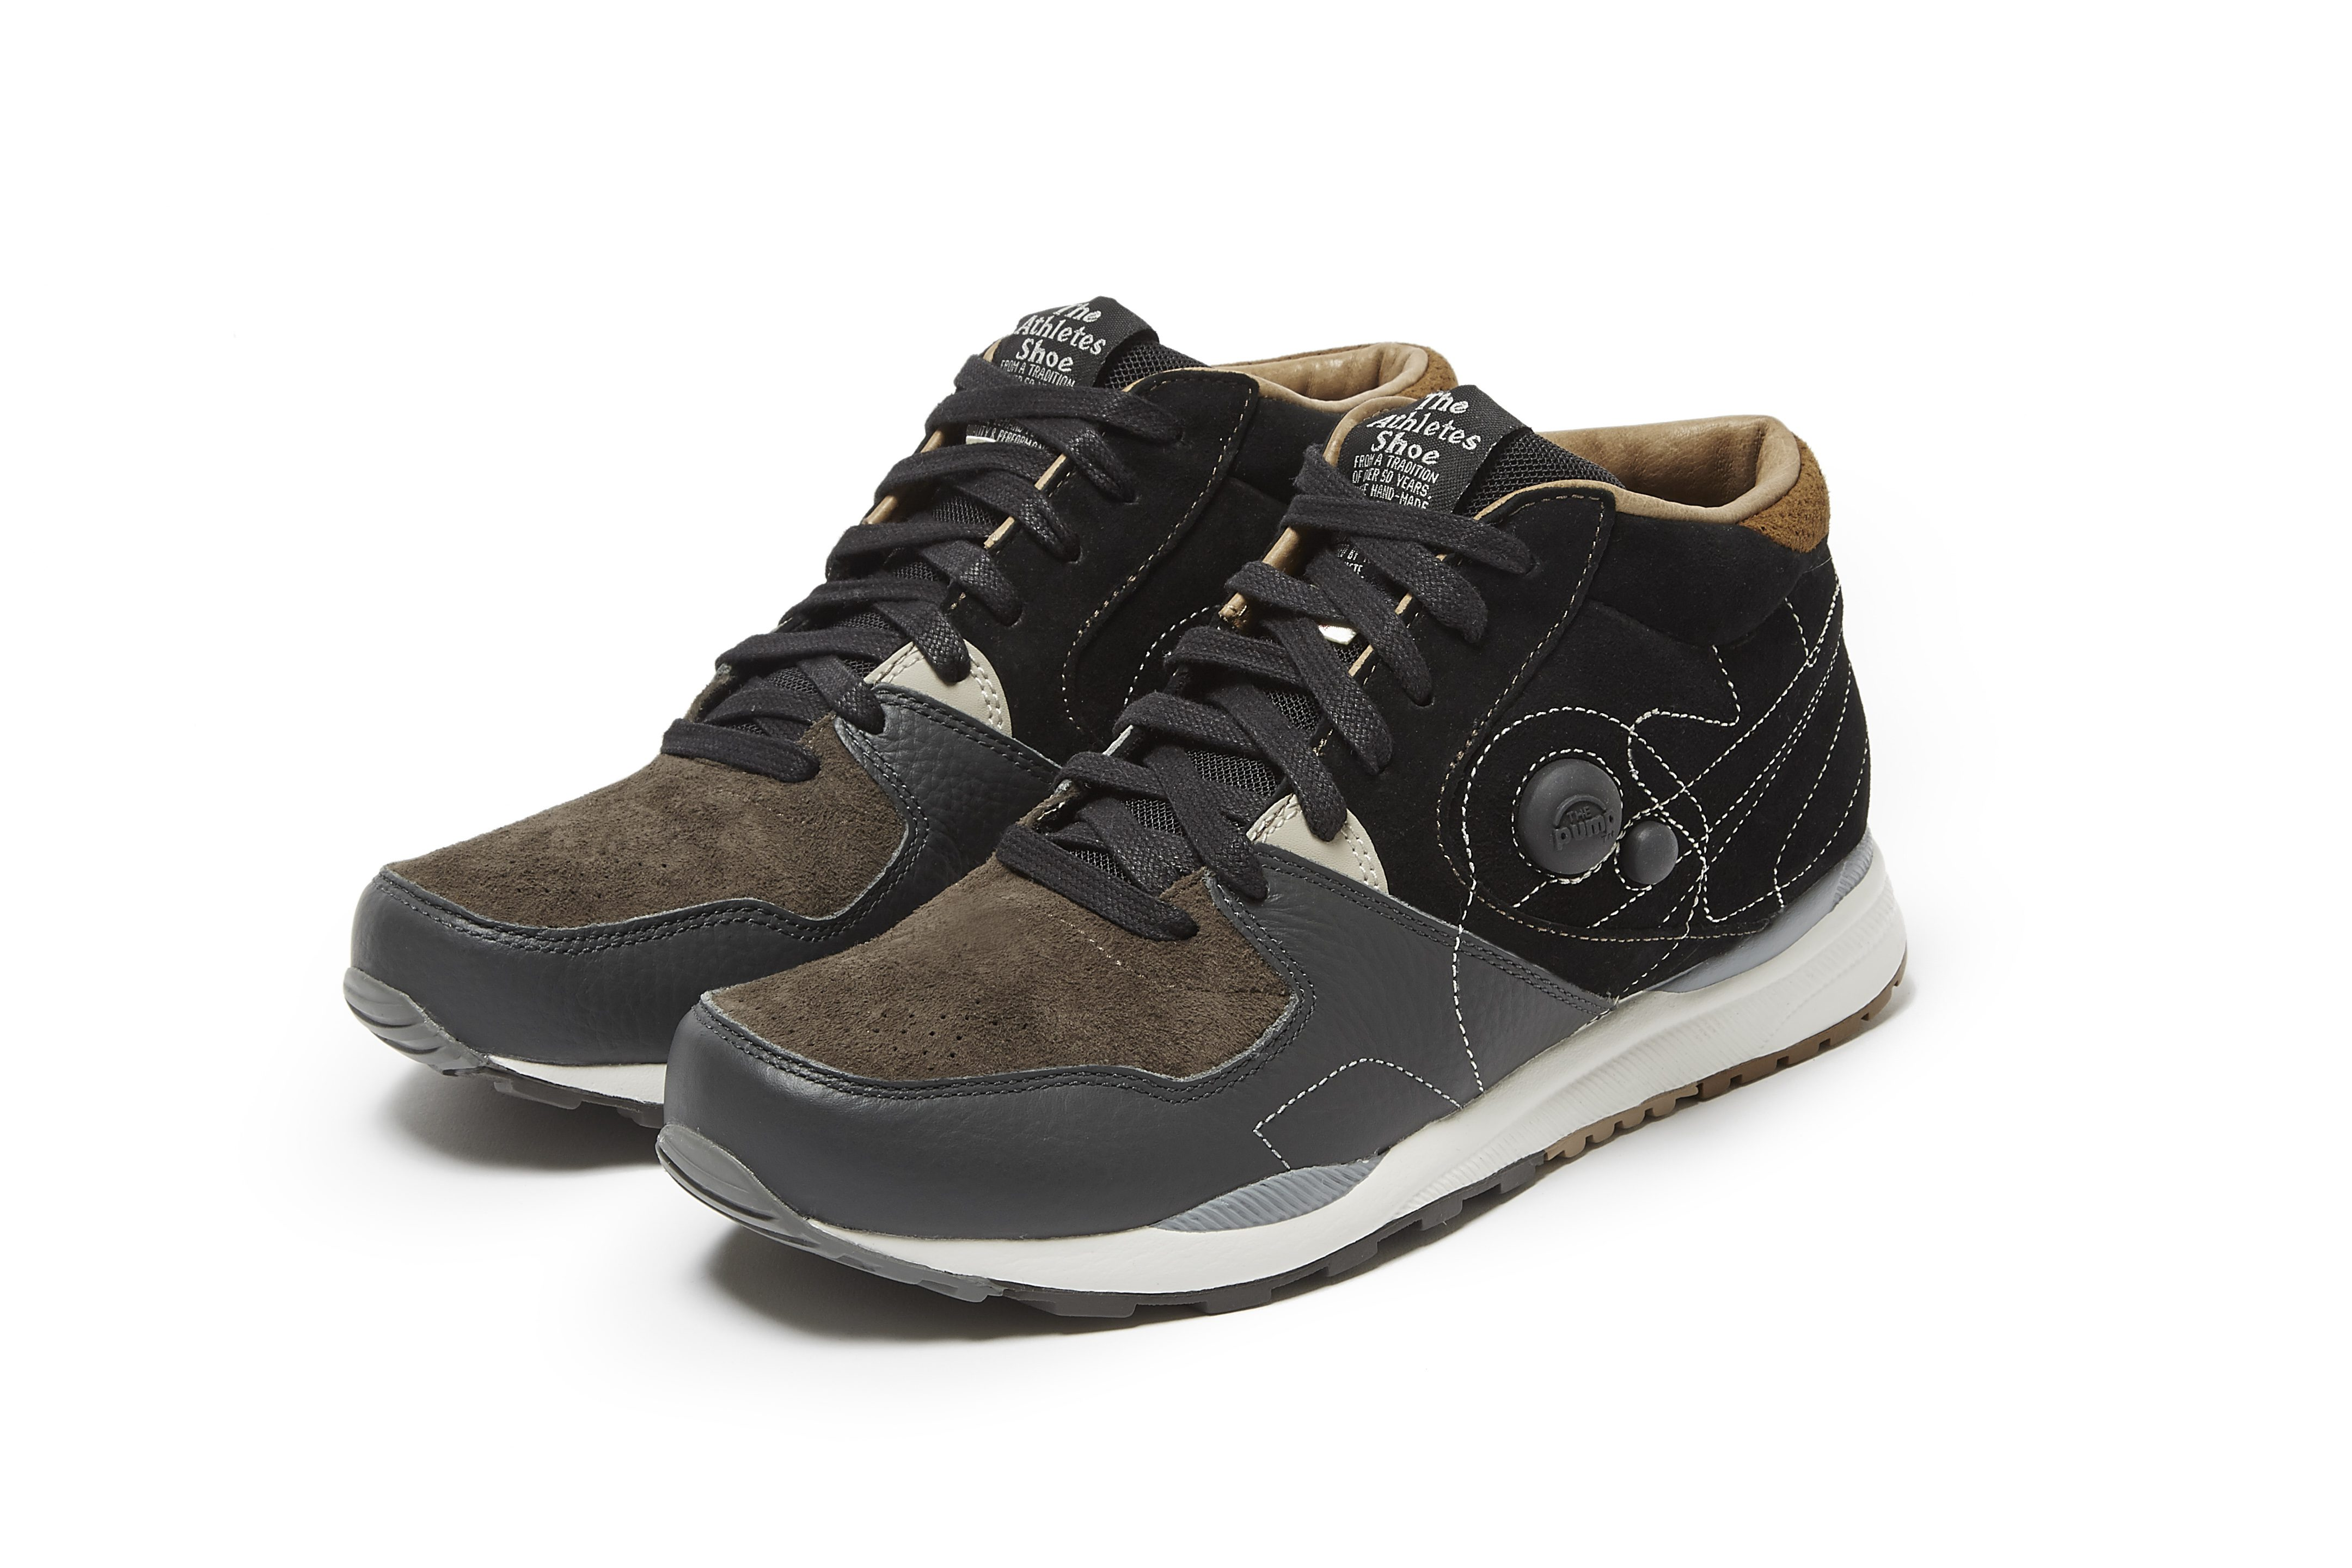 00965ebdf633 Reebok Classic x Garbstore Running Pack gives British accent to retro  runners